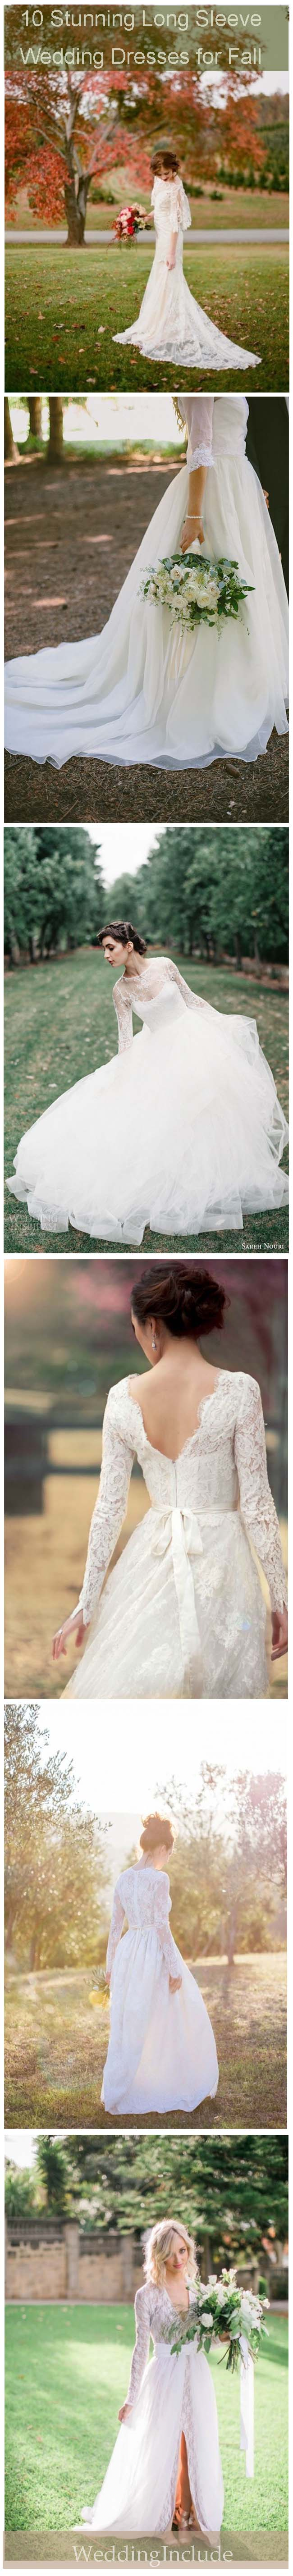 gorgeous long sleeve fall wedding dress 1 5 weddinginclude.com